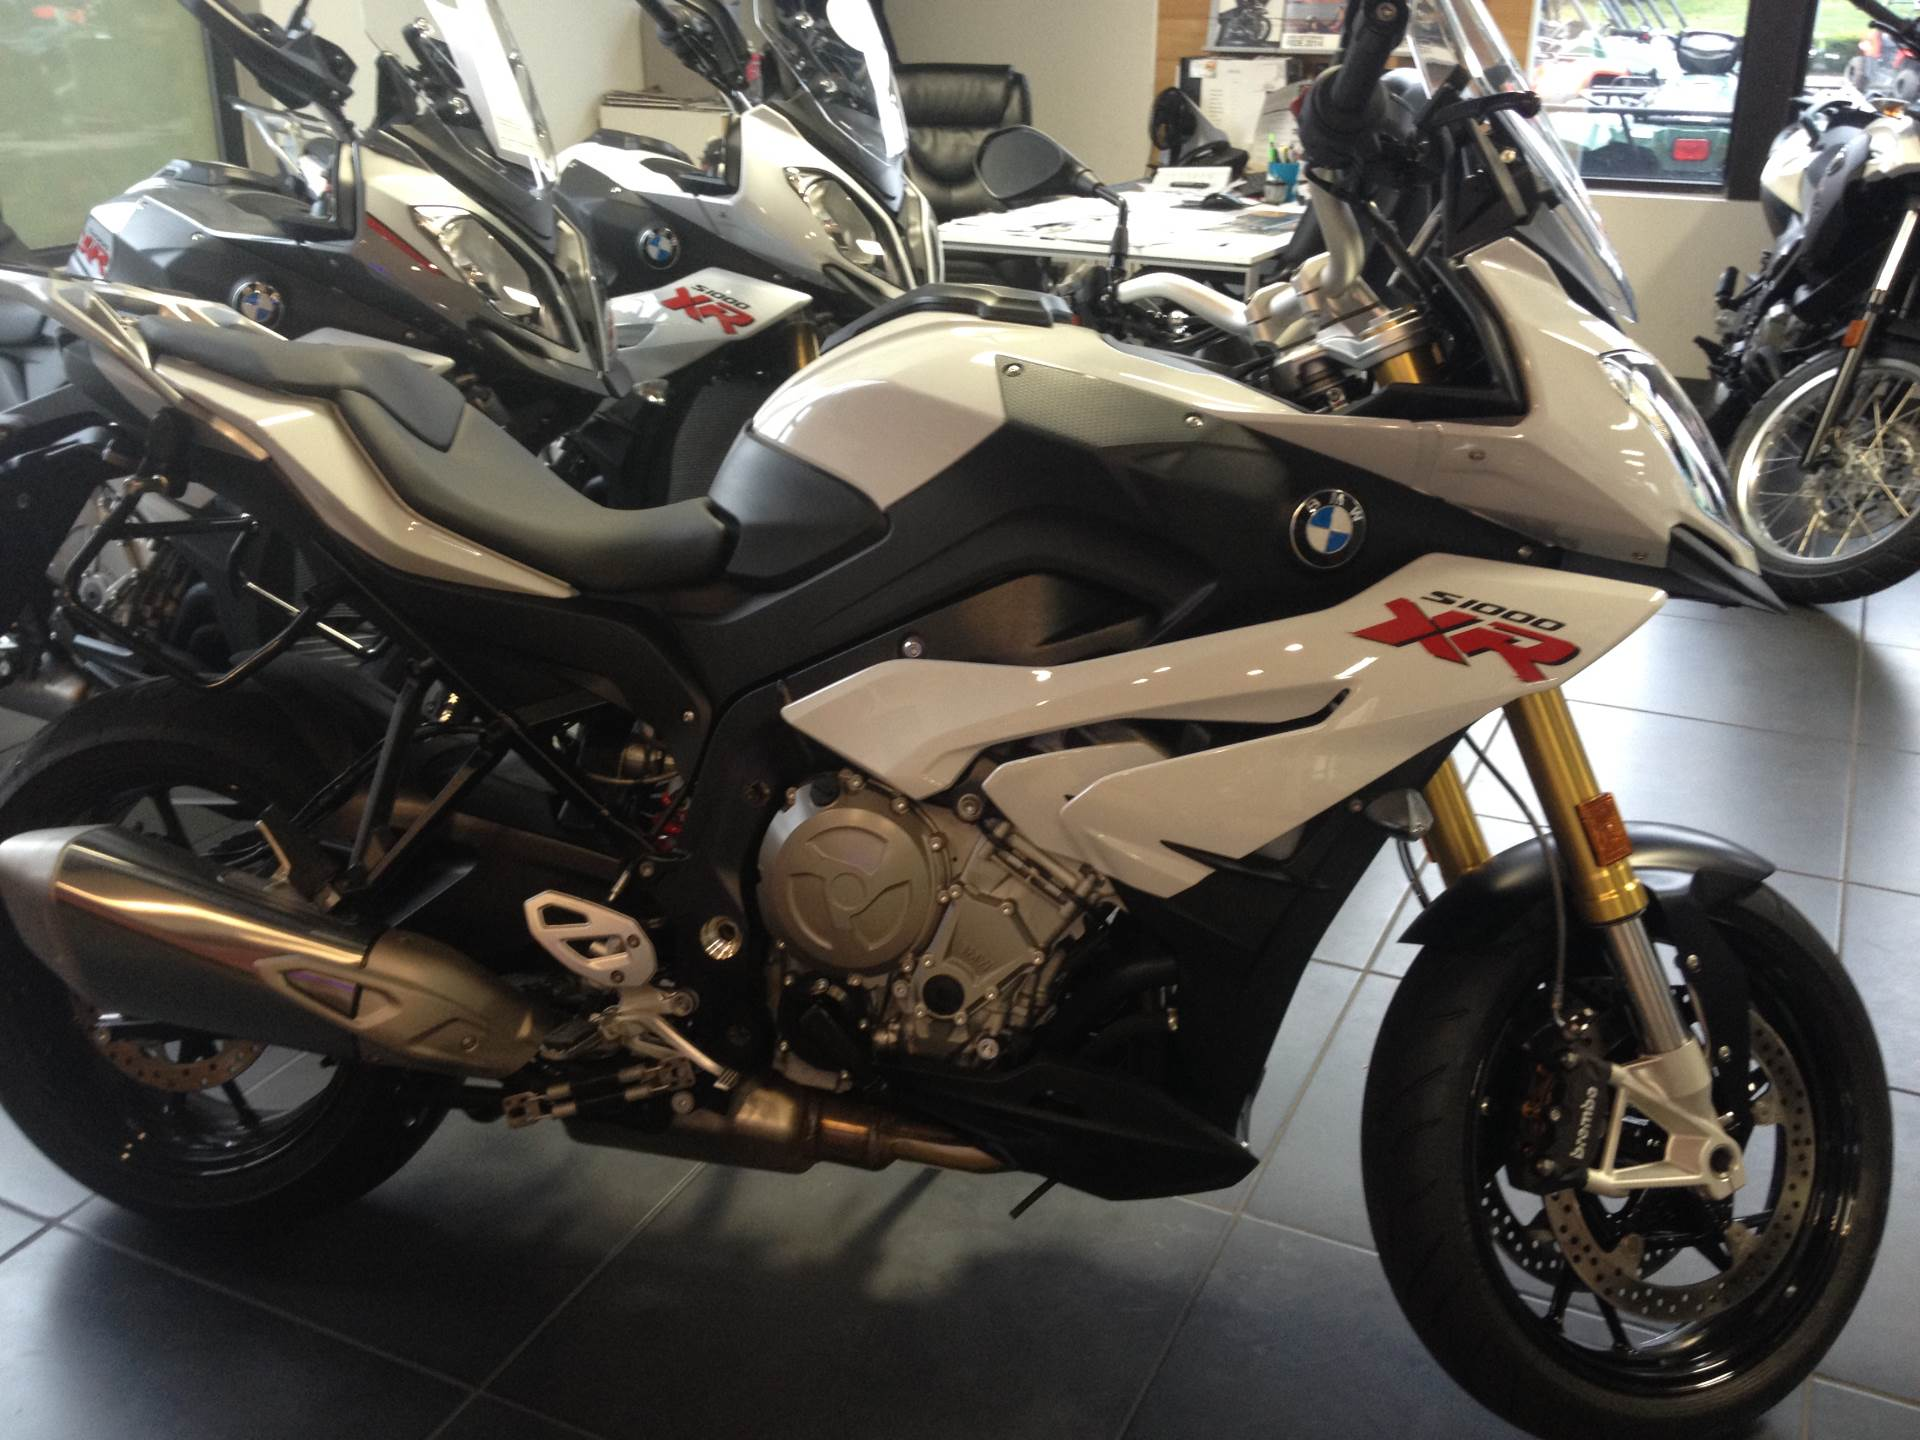 2016 INACTIVE S 1000 XR